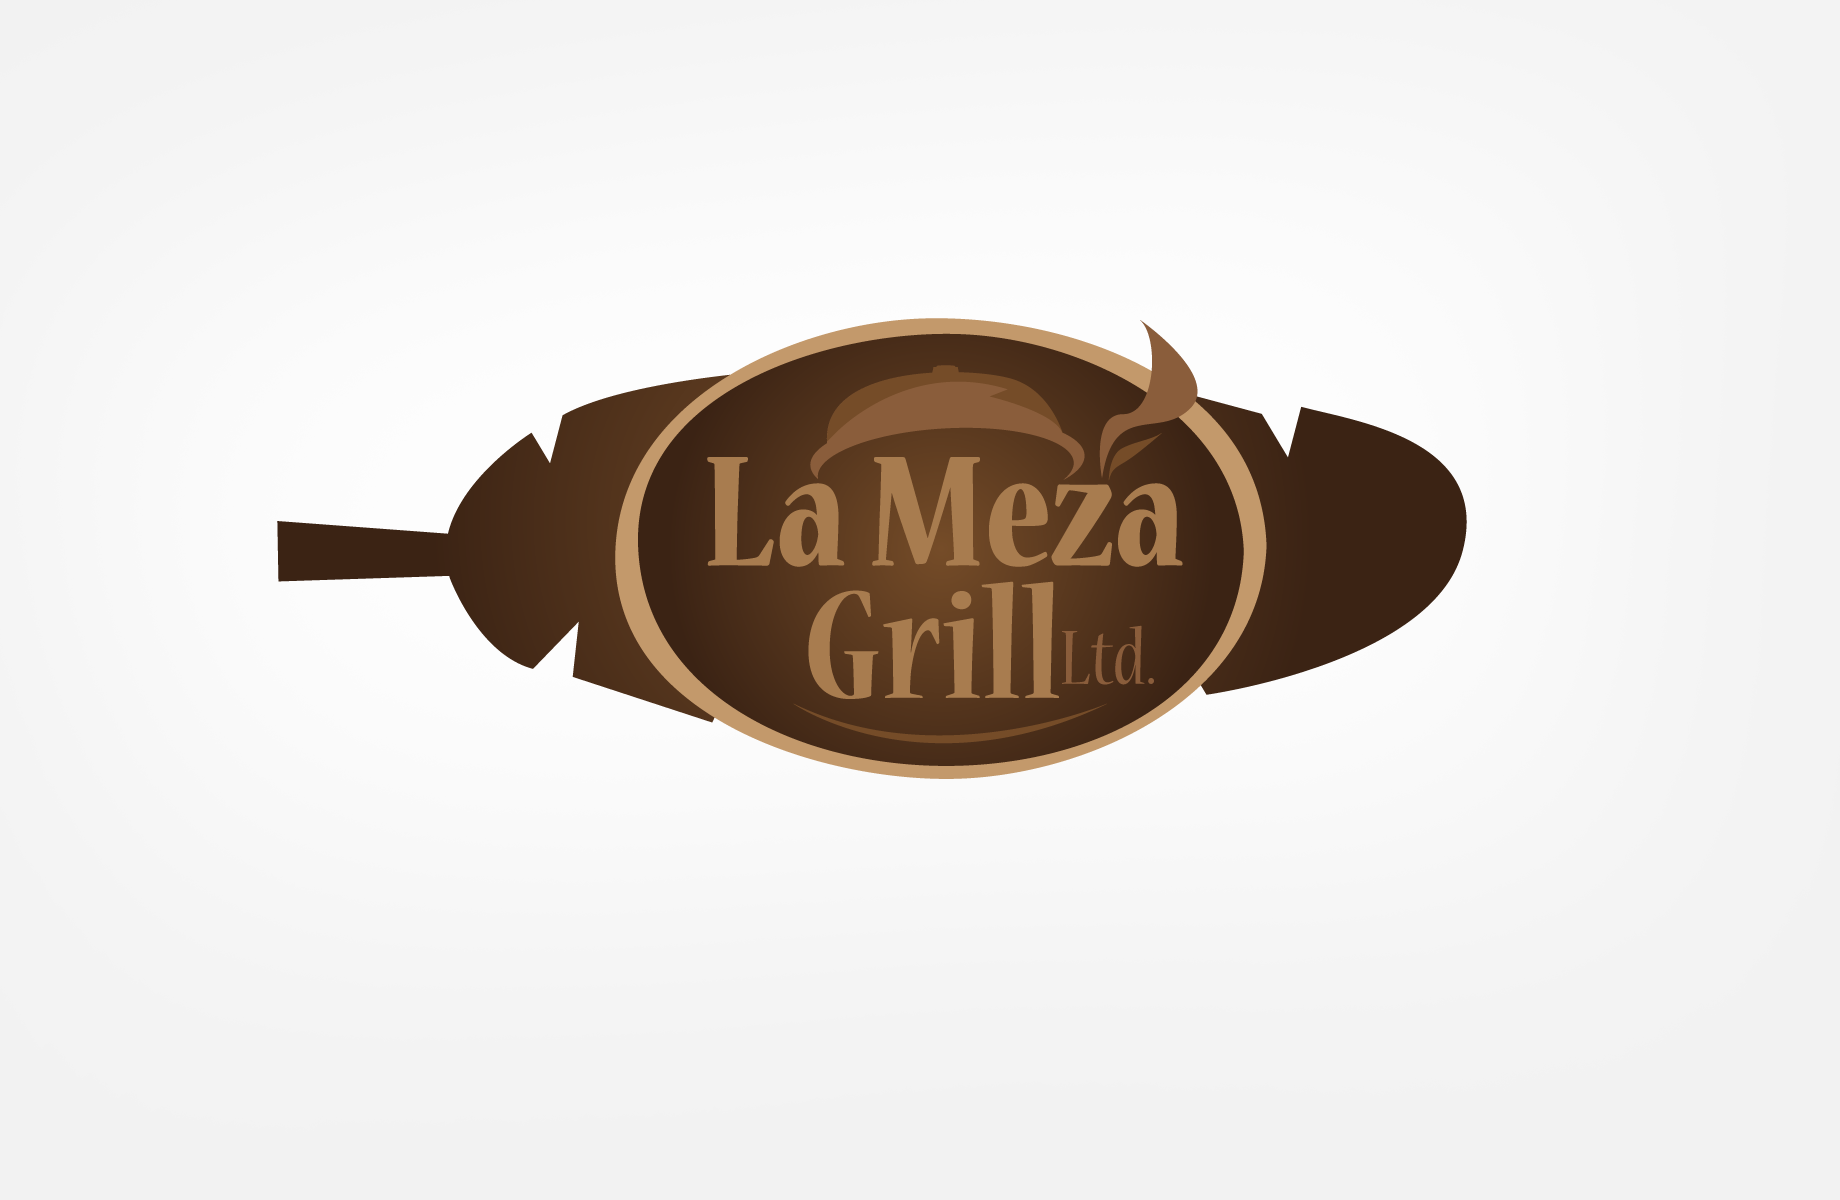 Logo Design by Jan Chua - Entry No. 40 in the Logo Design Contest Inspiring Logo Design for La Meza Grill Ltd..